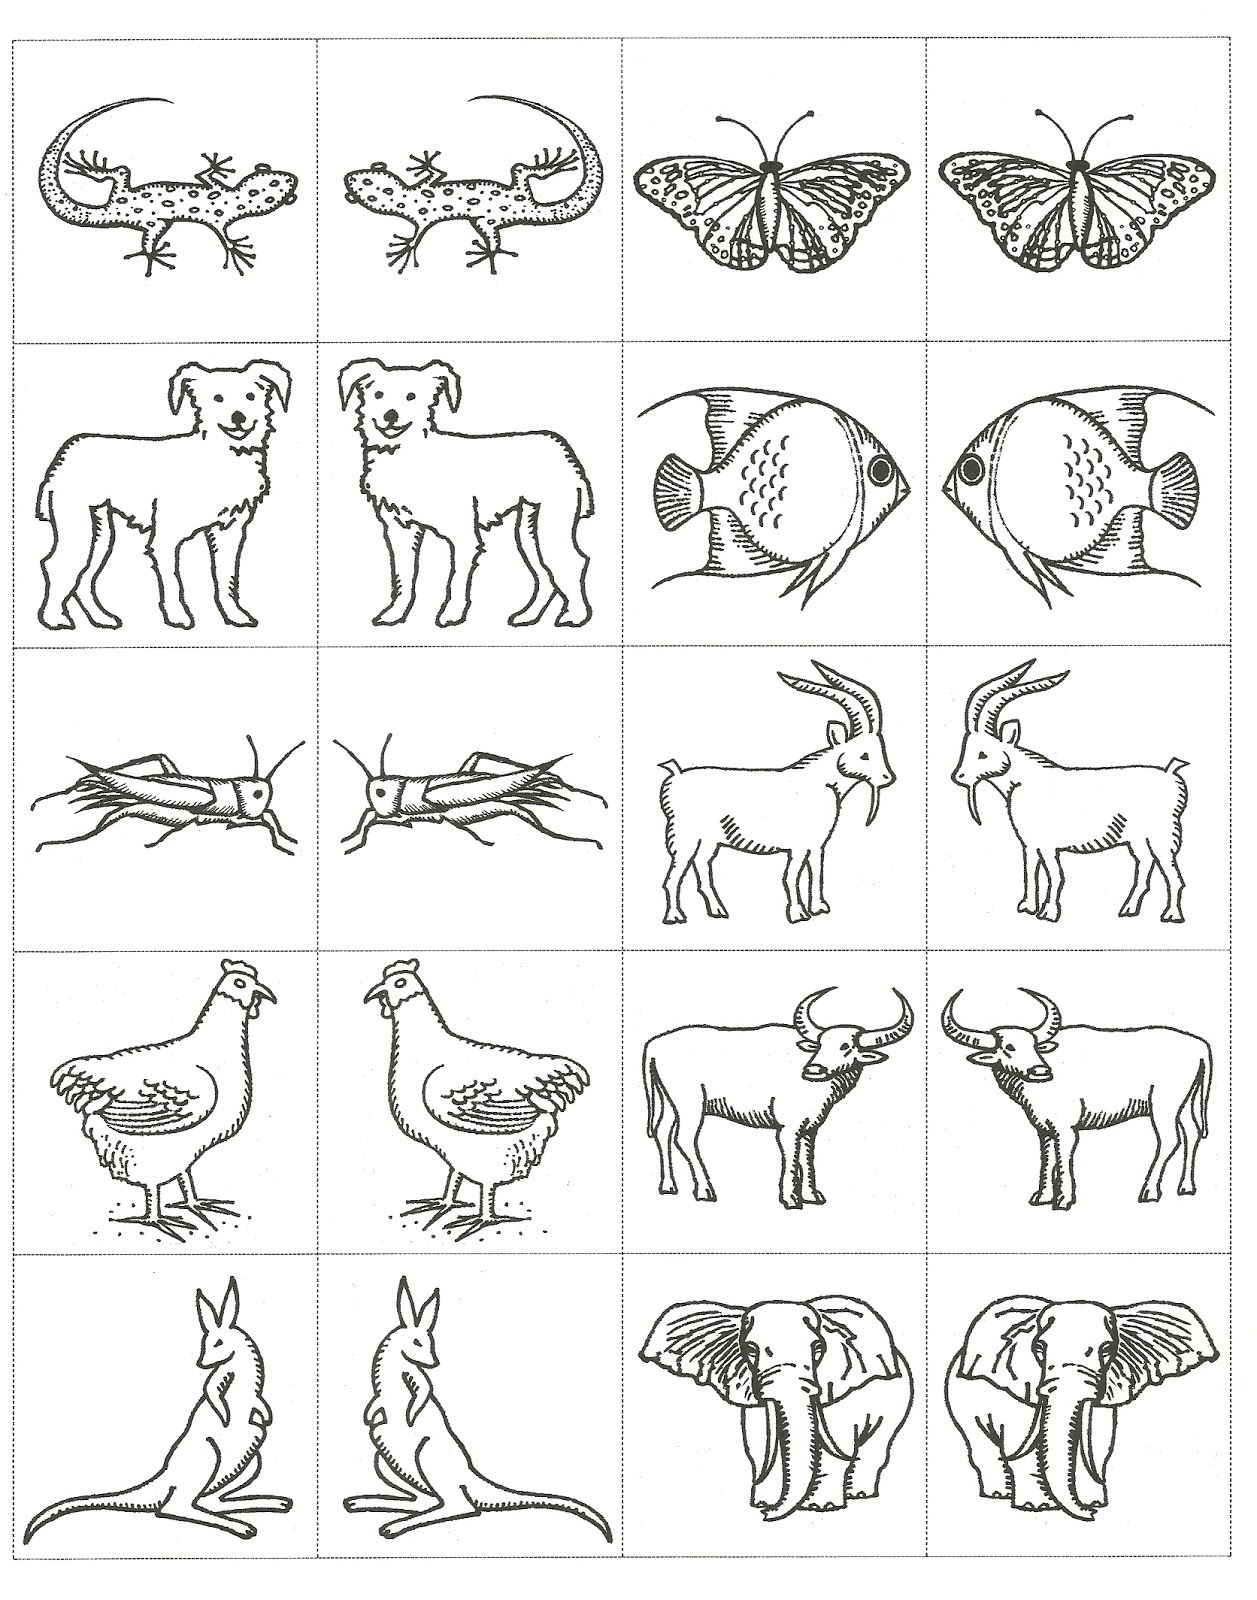 Noah Ark Animals Coloring Pages Pinterest • The World's